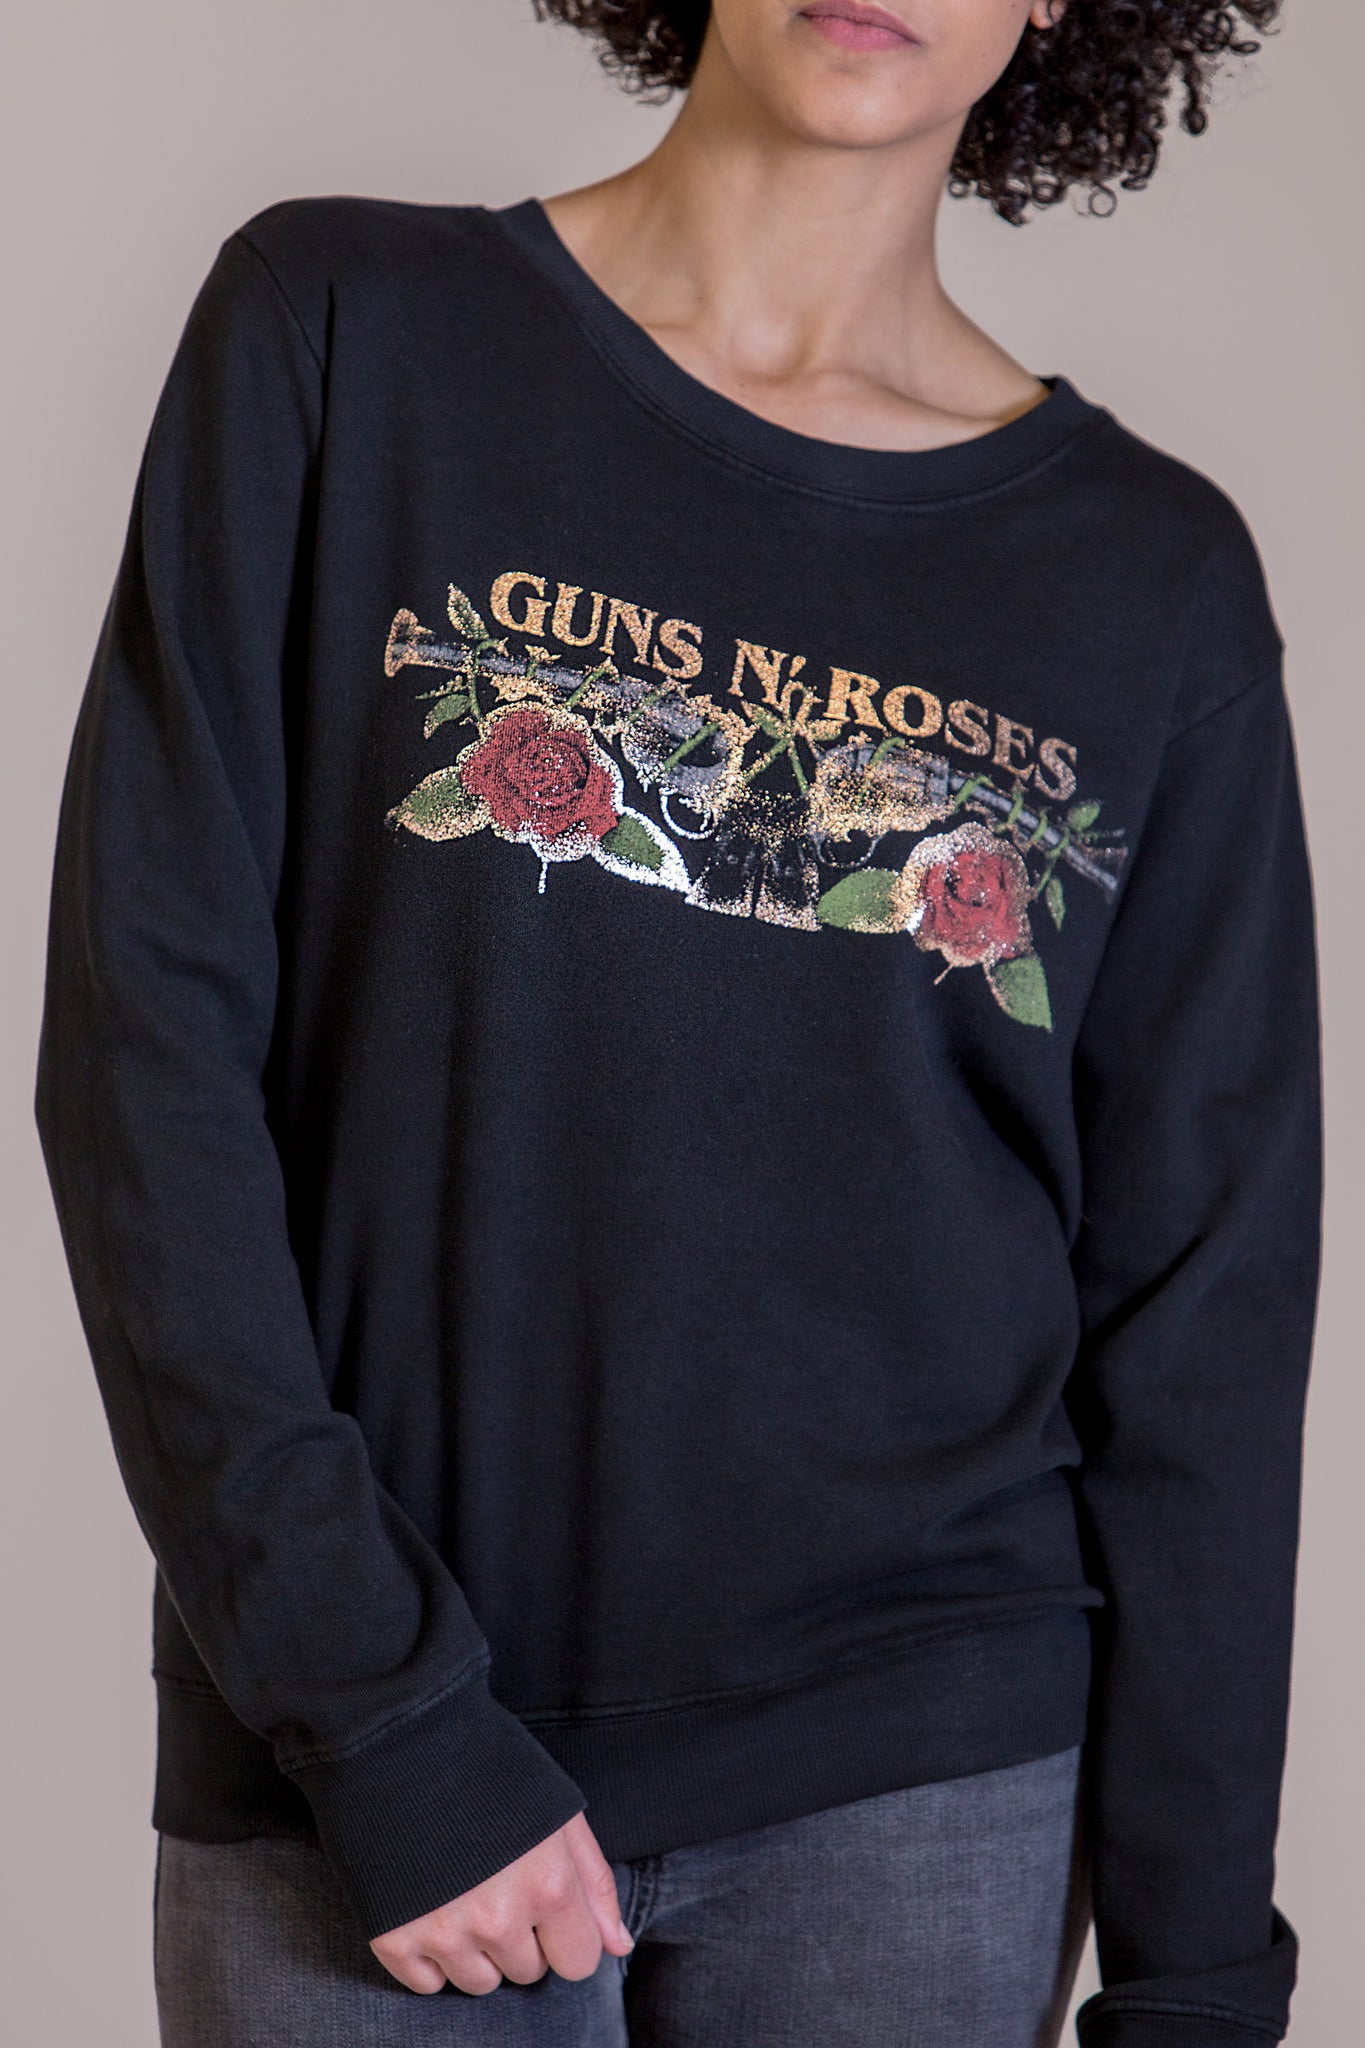 Guns N Roses Rose Gold Sweatshirt